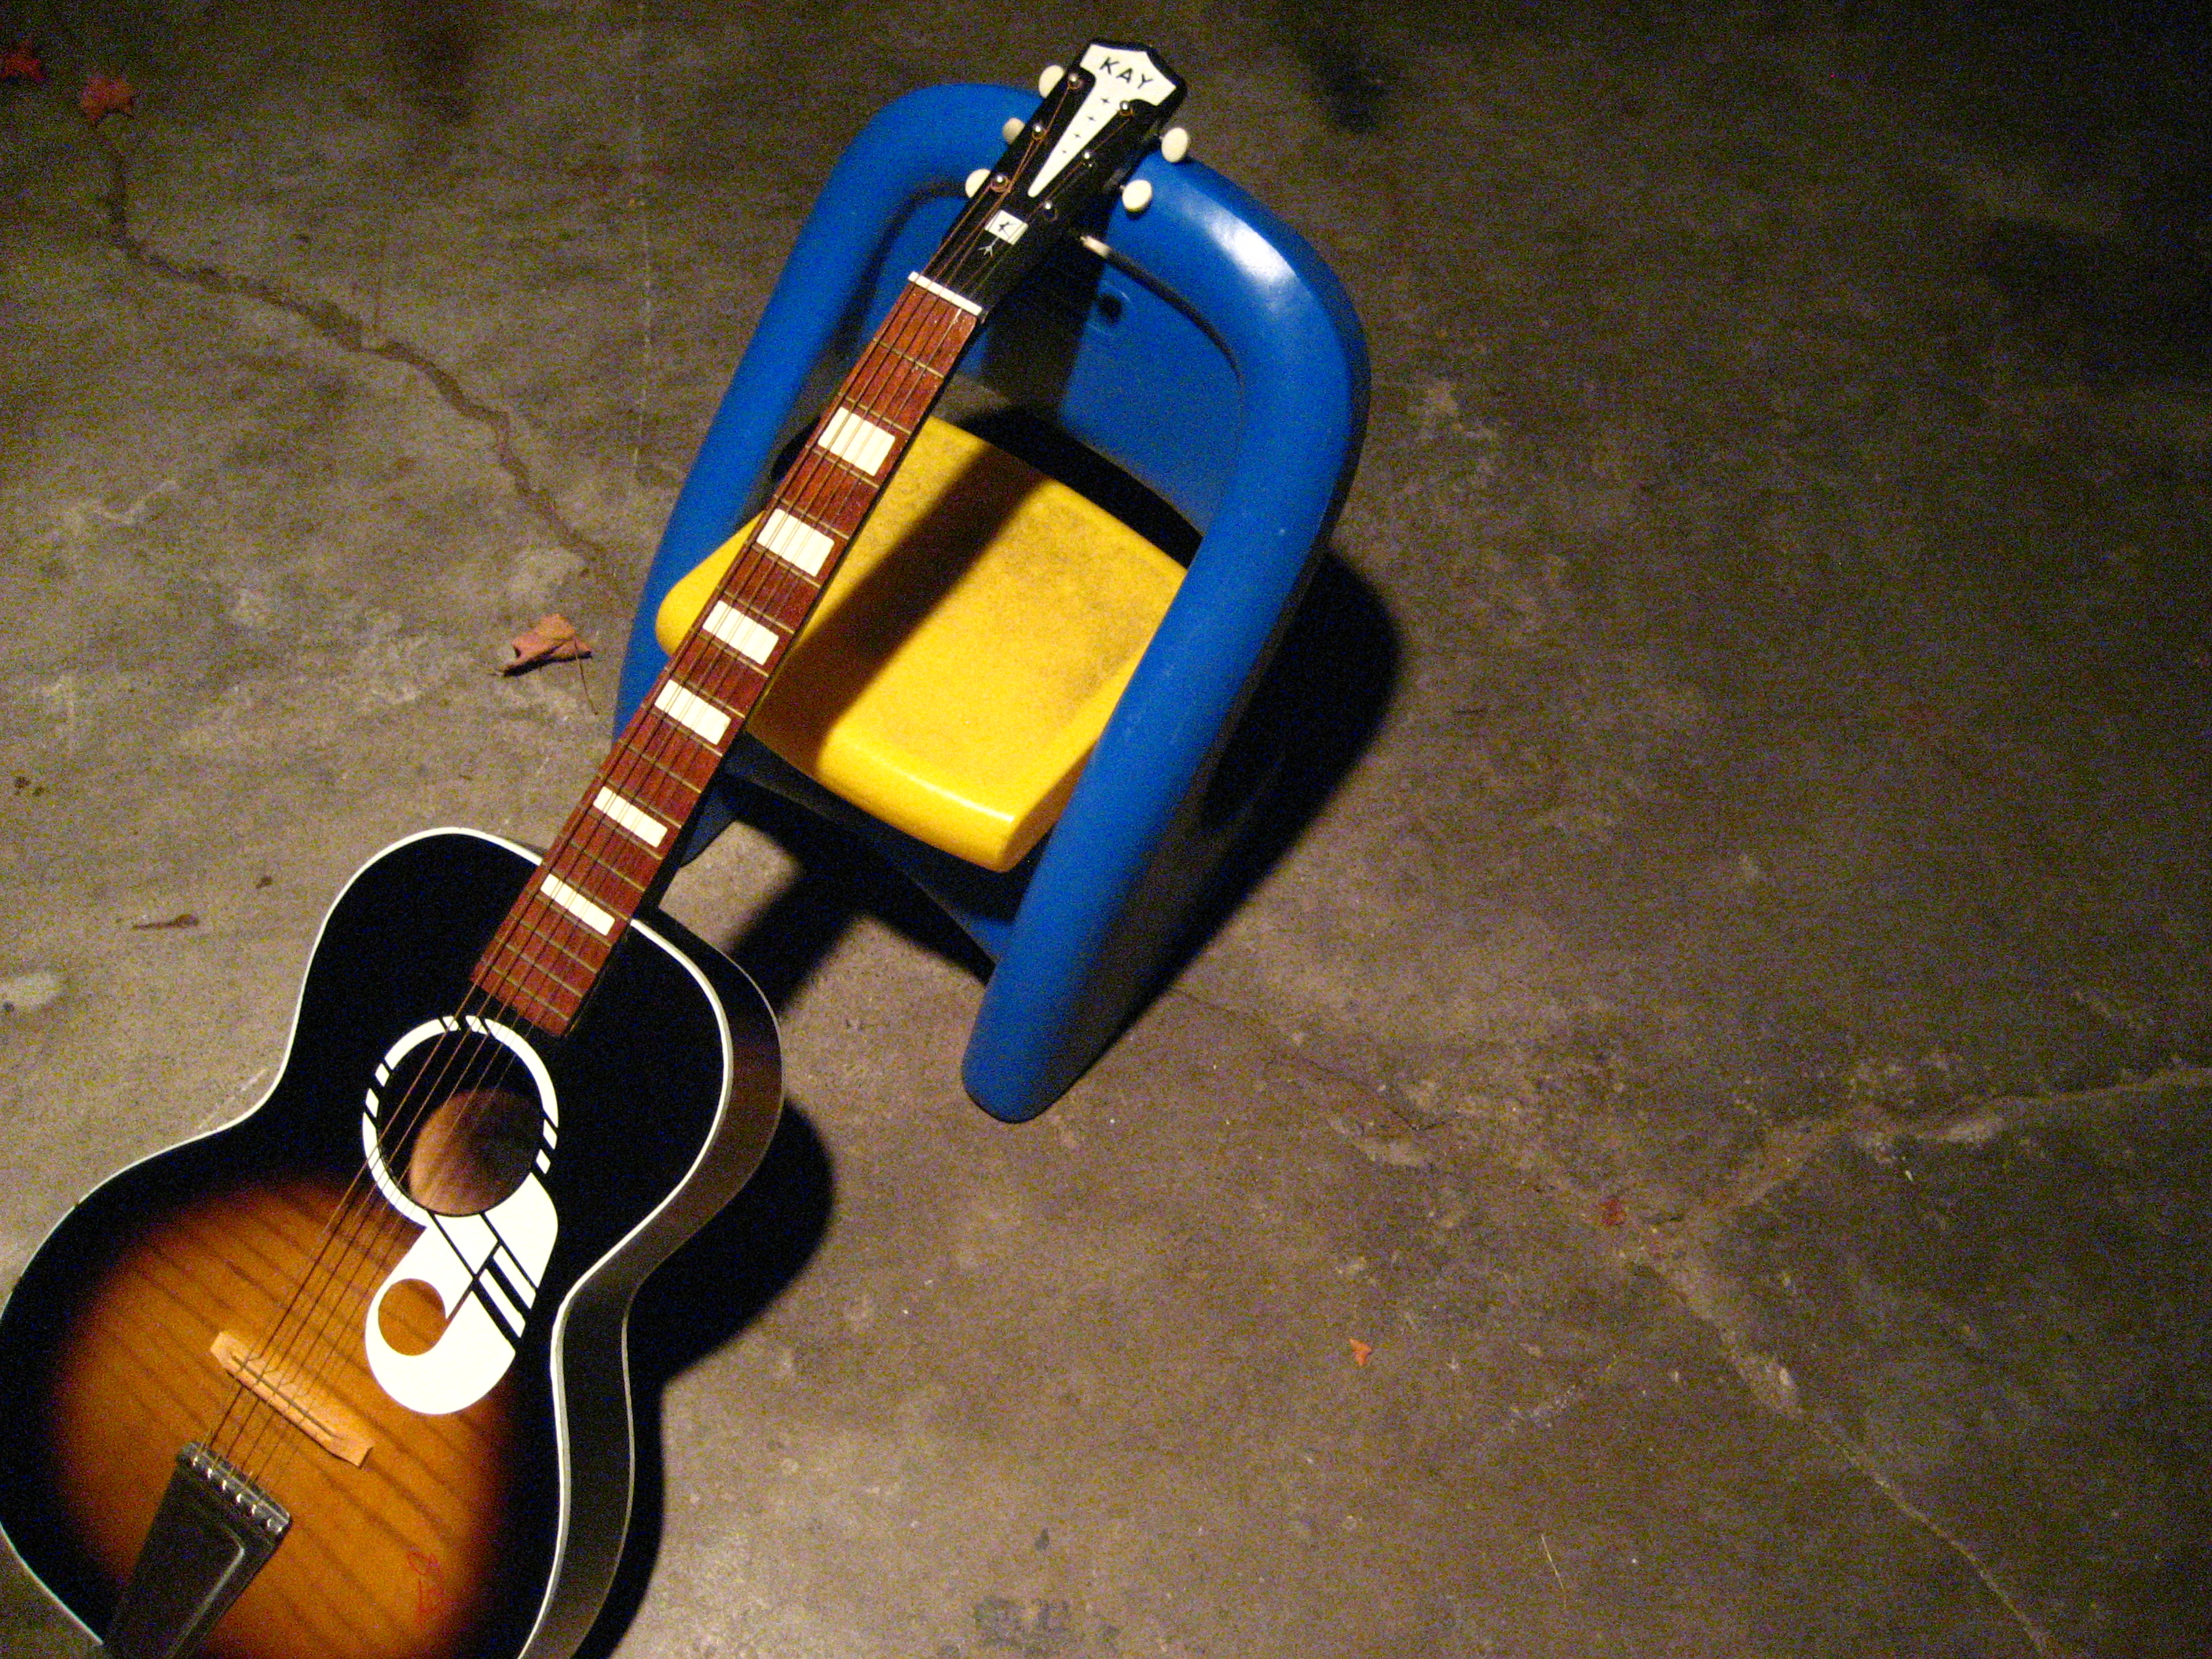 guitar shaped chair swivel mechanism awesome rtty1